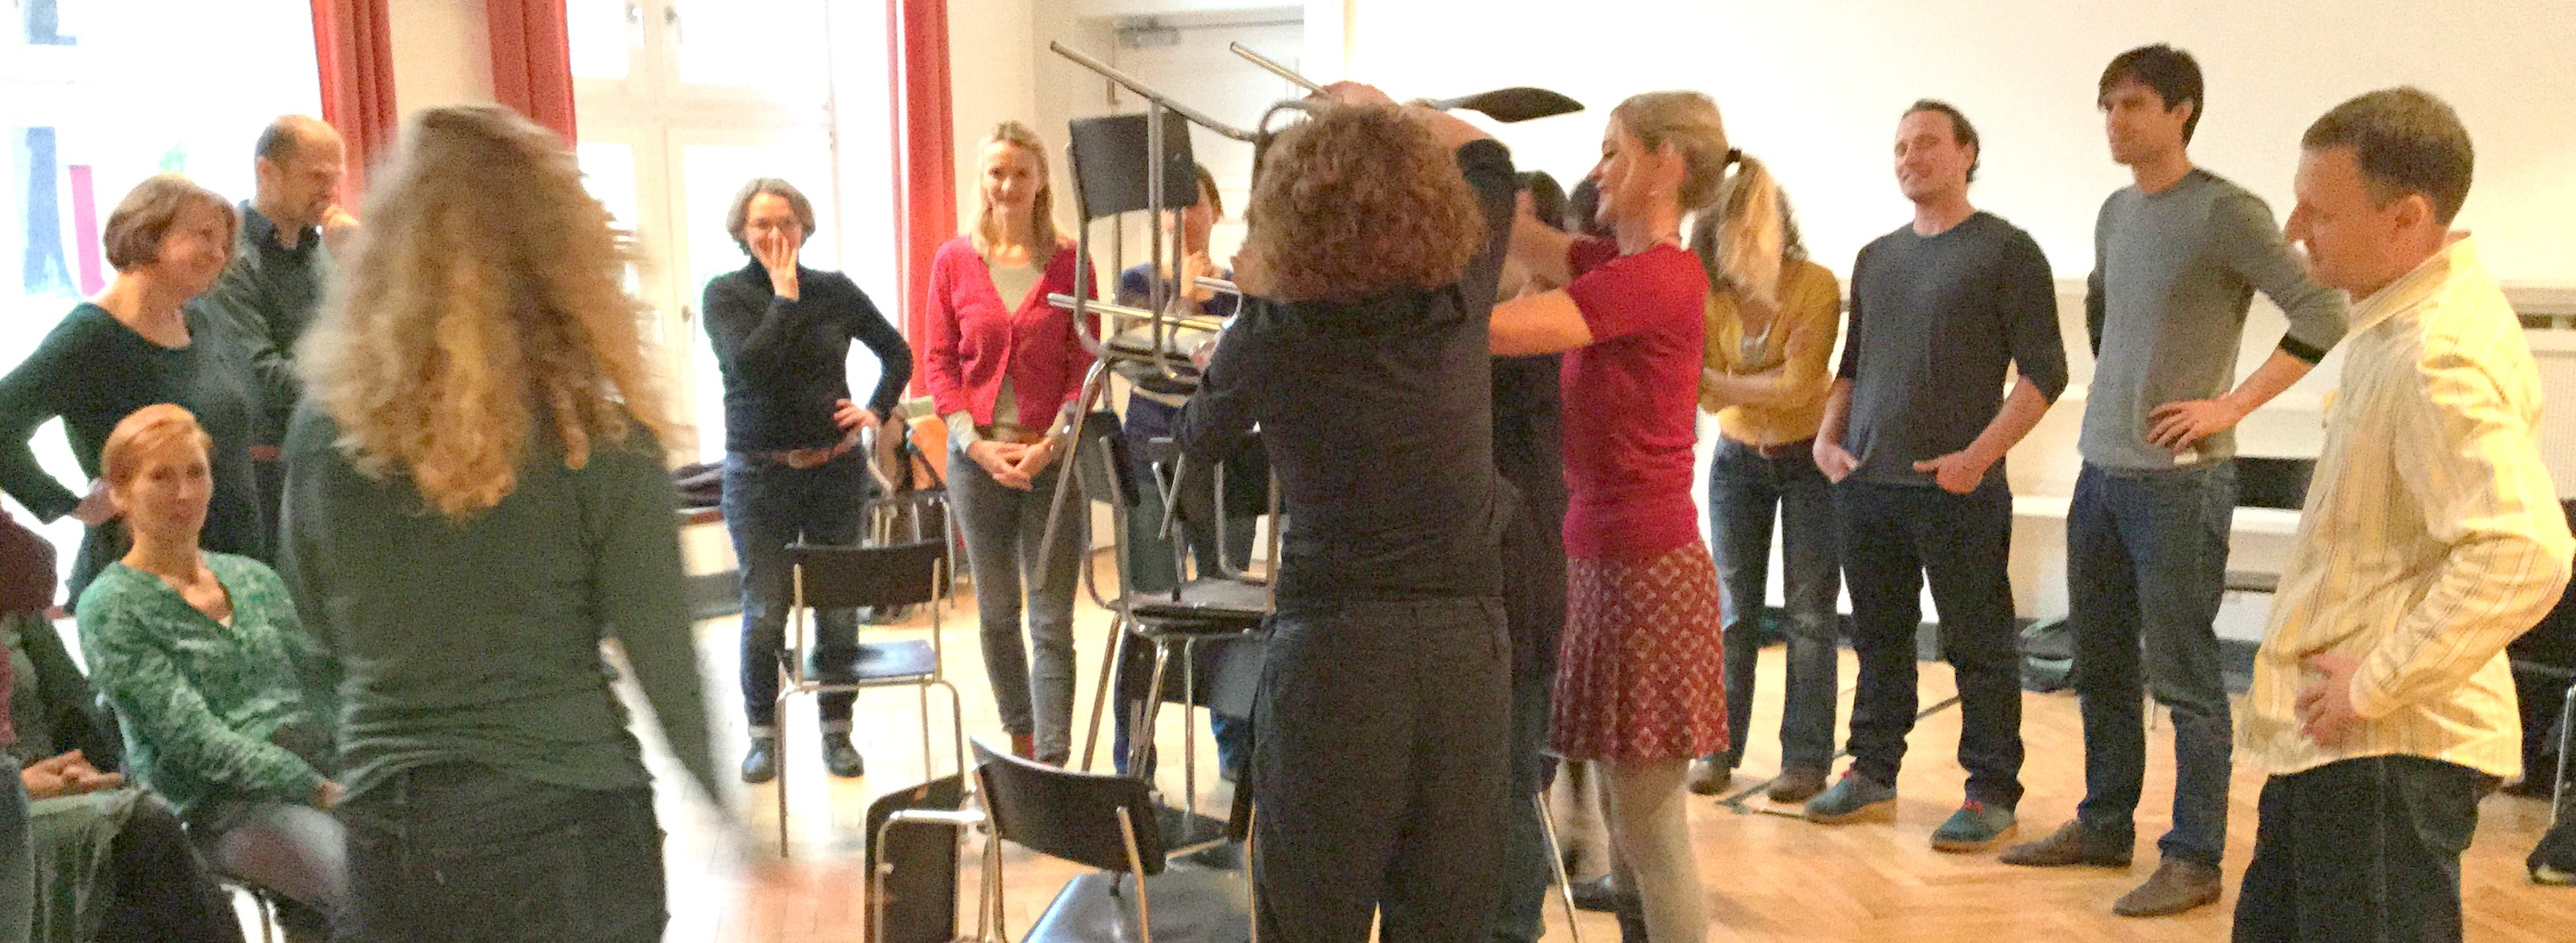 Workshop Angewandte Improvisation - GST Konferenz Berlin